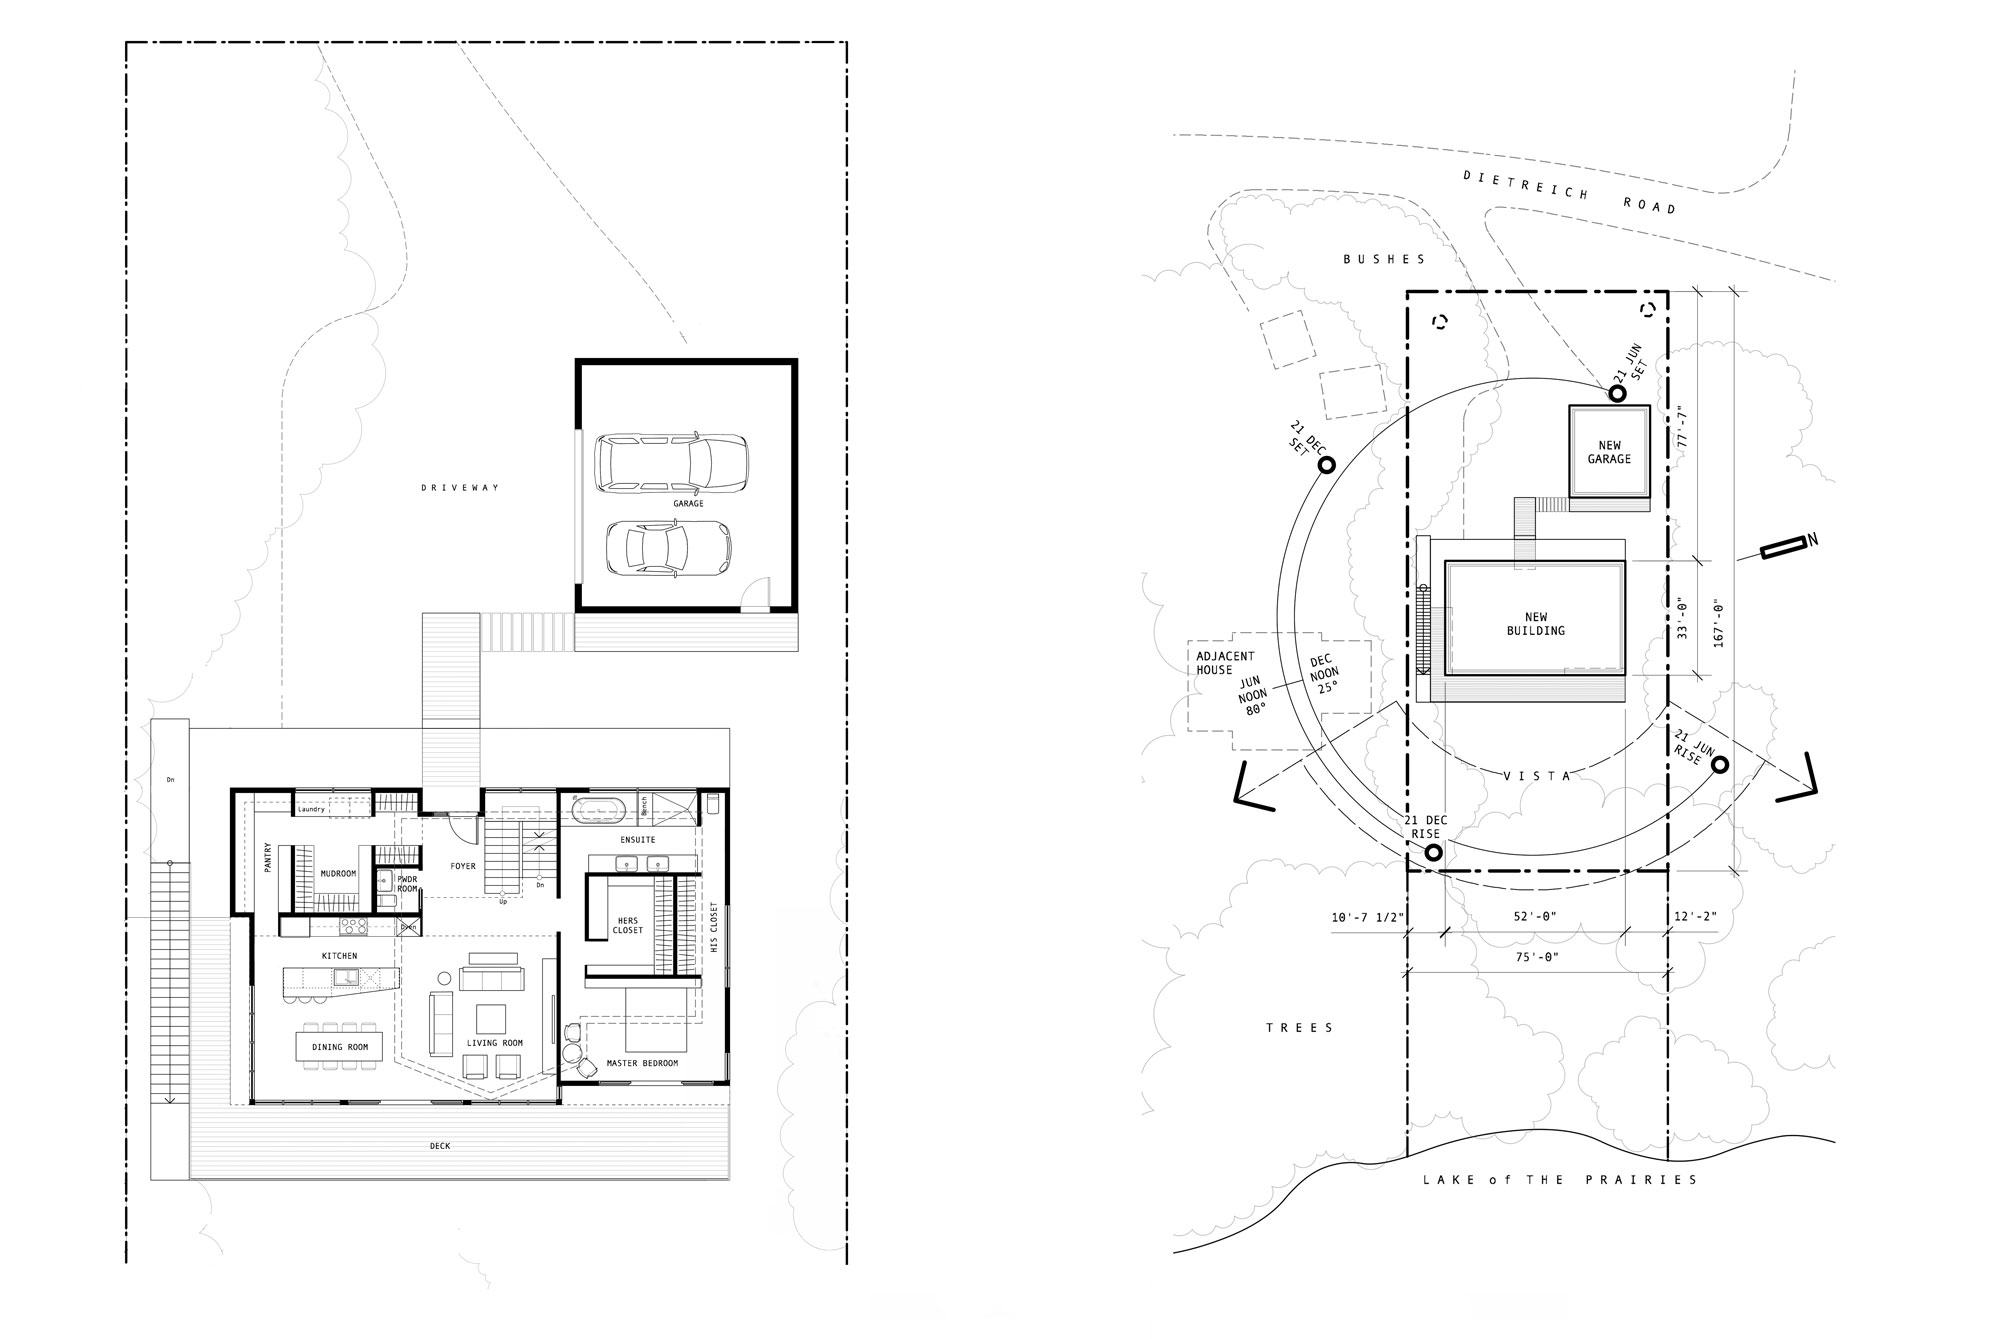 Unit 7 Architecture | Projects - Lake of the Prairies Summer Home - LEFT TO RIGHT: MAIN LEVEL PLAN AND SITE PLAN